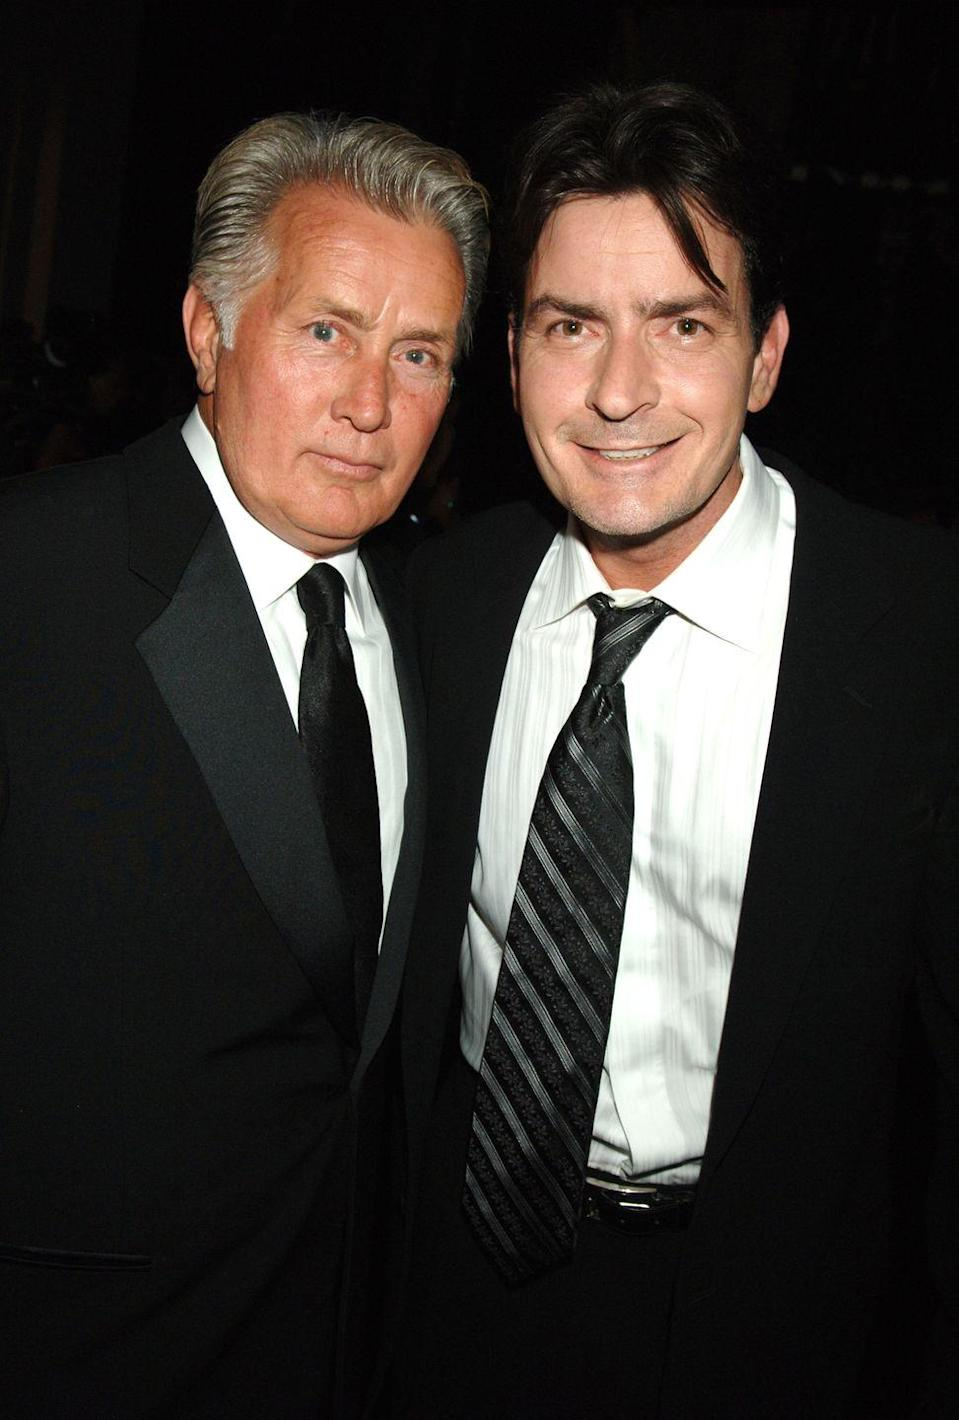 """<p><strong>Famous parent(s)</strong>: actor Martin Sheen<br><strong>What it was like</strong>: Charlie says they've gotten closer since his HIV diagnosis. """"I don't want to say it's specifically changed our relationship but something happened with he and I,"""" Charlie has <a href=""""http://pagesix.com/2016/01/11/charlie-sheen-better-friends-with-dad-after-hiv-diagnosis/"""" rel=""""nofollow noopener"""" target=""""_blank"""" data-ylk=""""slk:said"""" class=""""link rapid-noclick-resp"""">said</a>. """"We are such better friends than we've ever been. We don't judge each other. [It's] nothing but fun when we hang out. We don't agree on everything, obviously. I mean what son and father do? He's a special cat. And I'm really lucky to have him.""""</p>"""